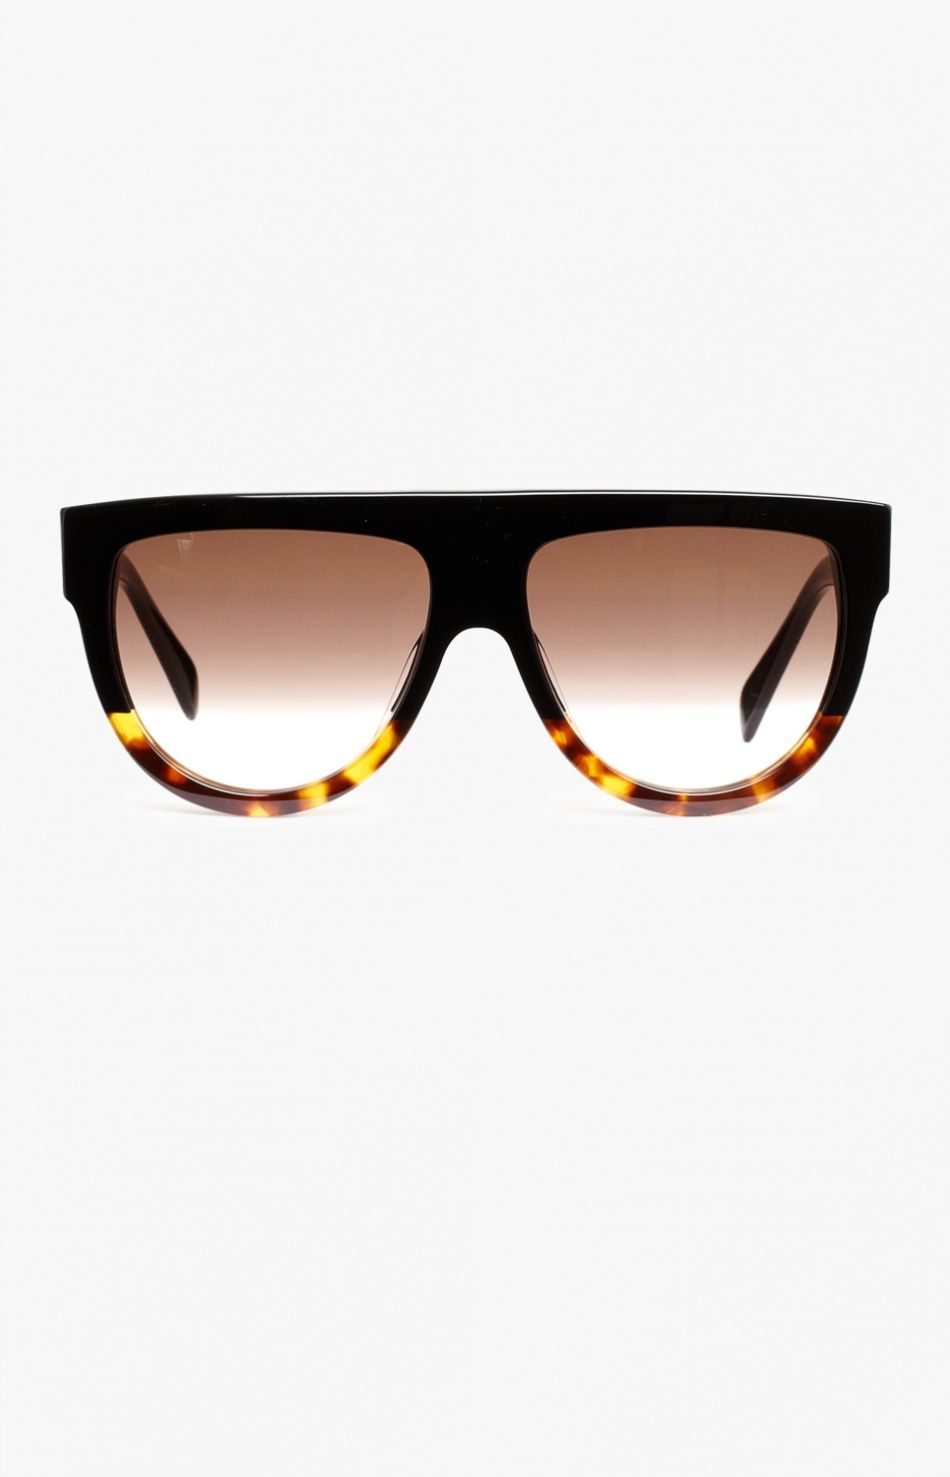 Celine - Havana/Blonde Shadow Sunglasses | Accessories | Pinterest ...